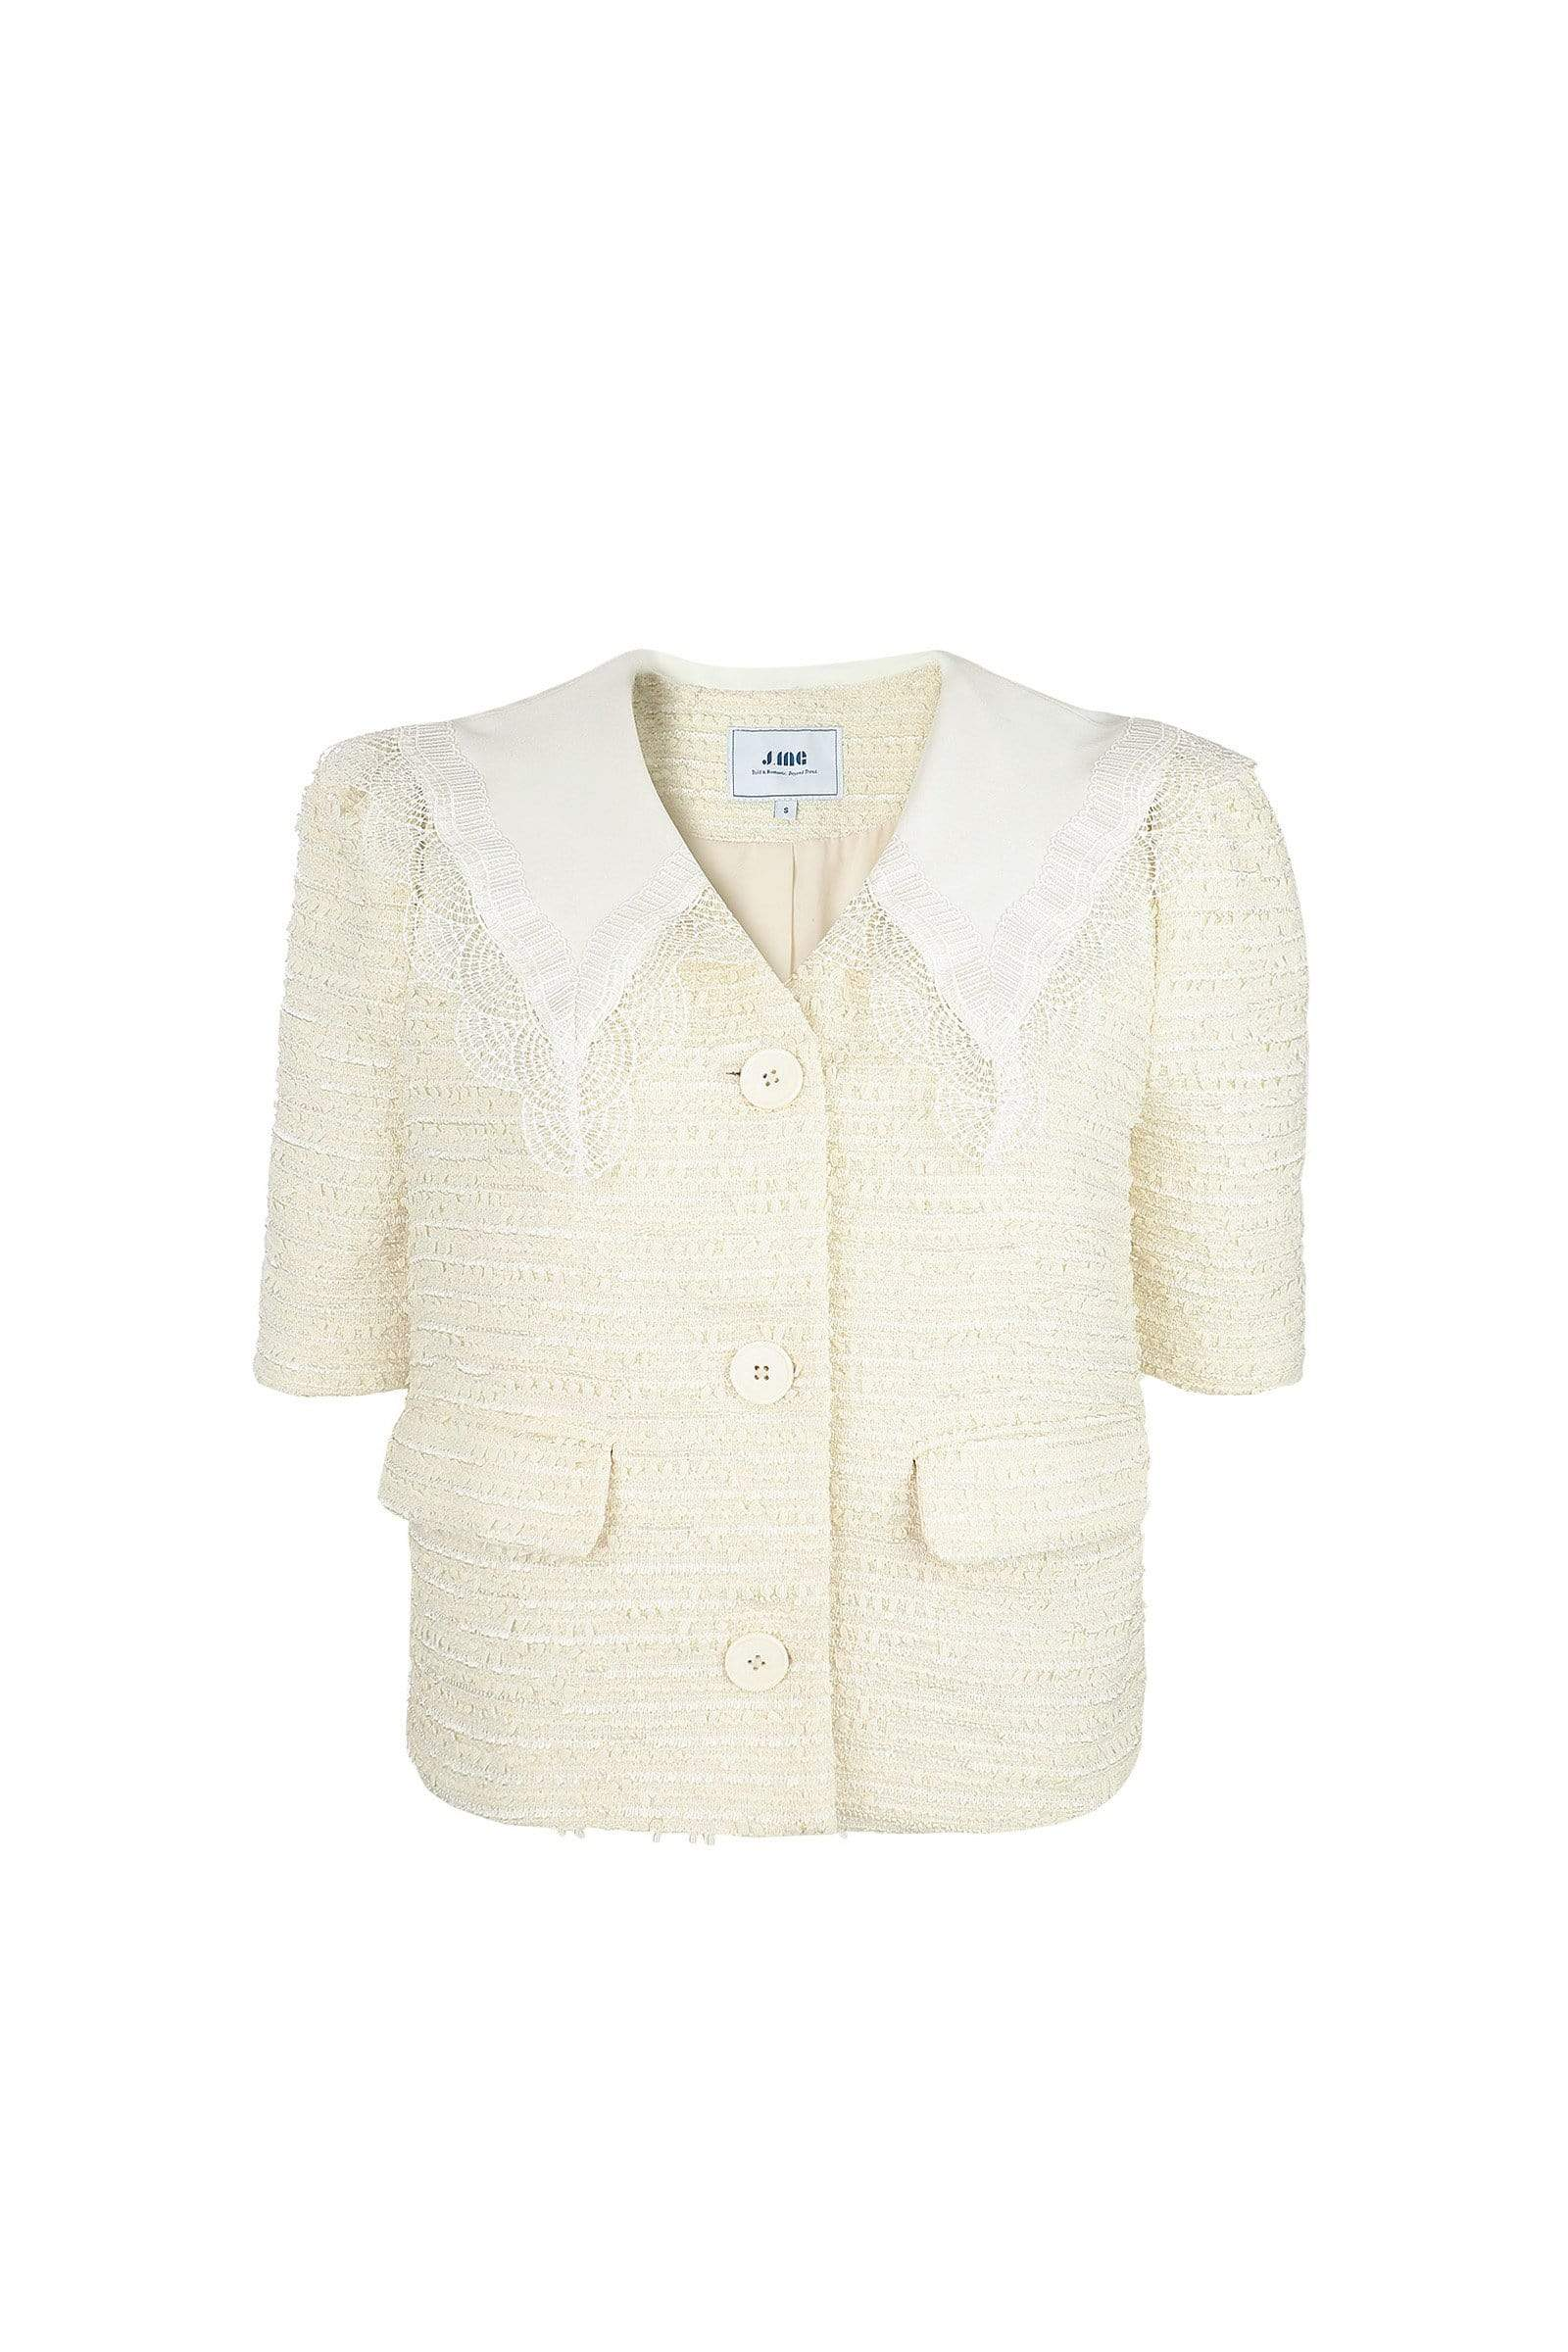 Dorian Green Quilted Down Coat for women by J.ING